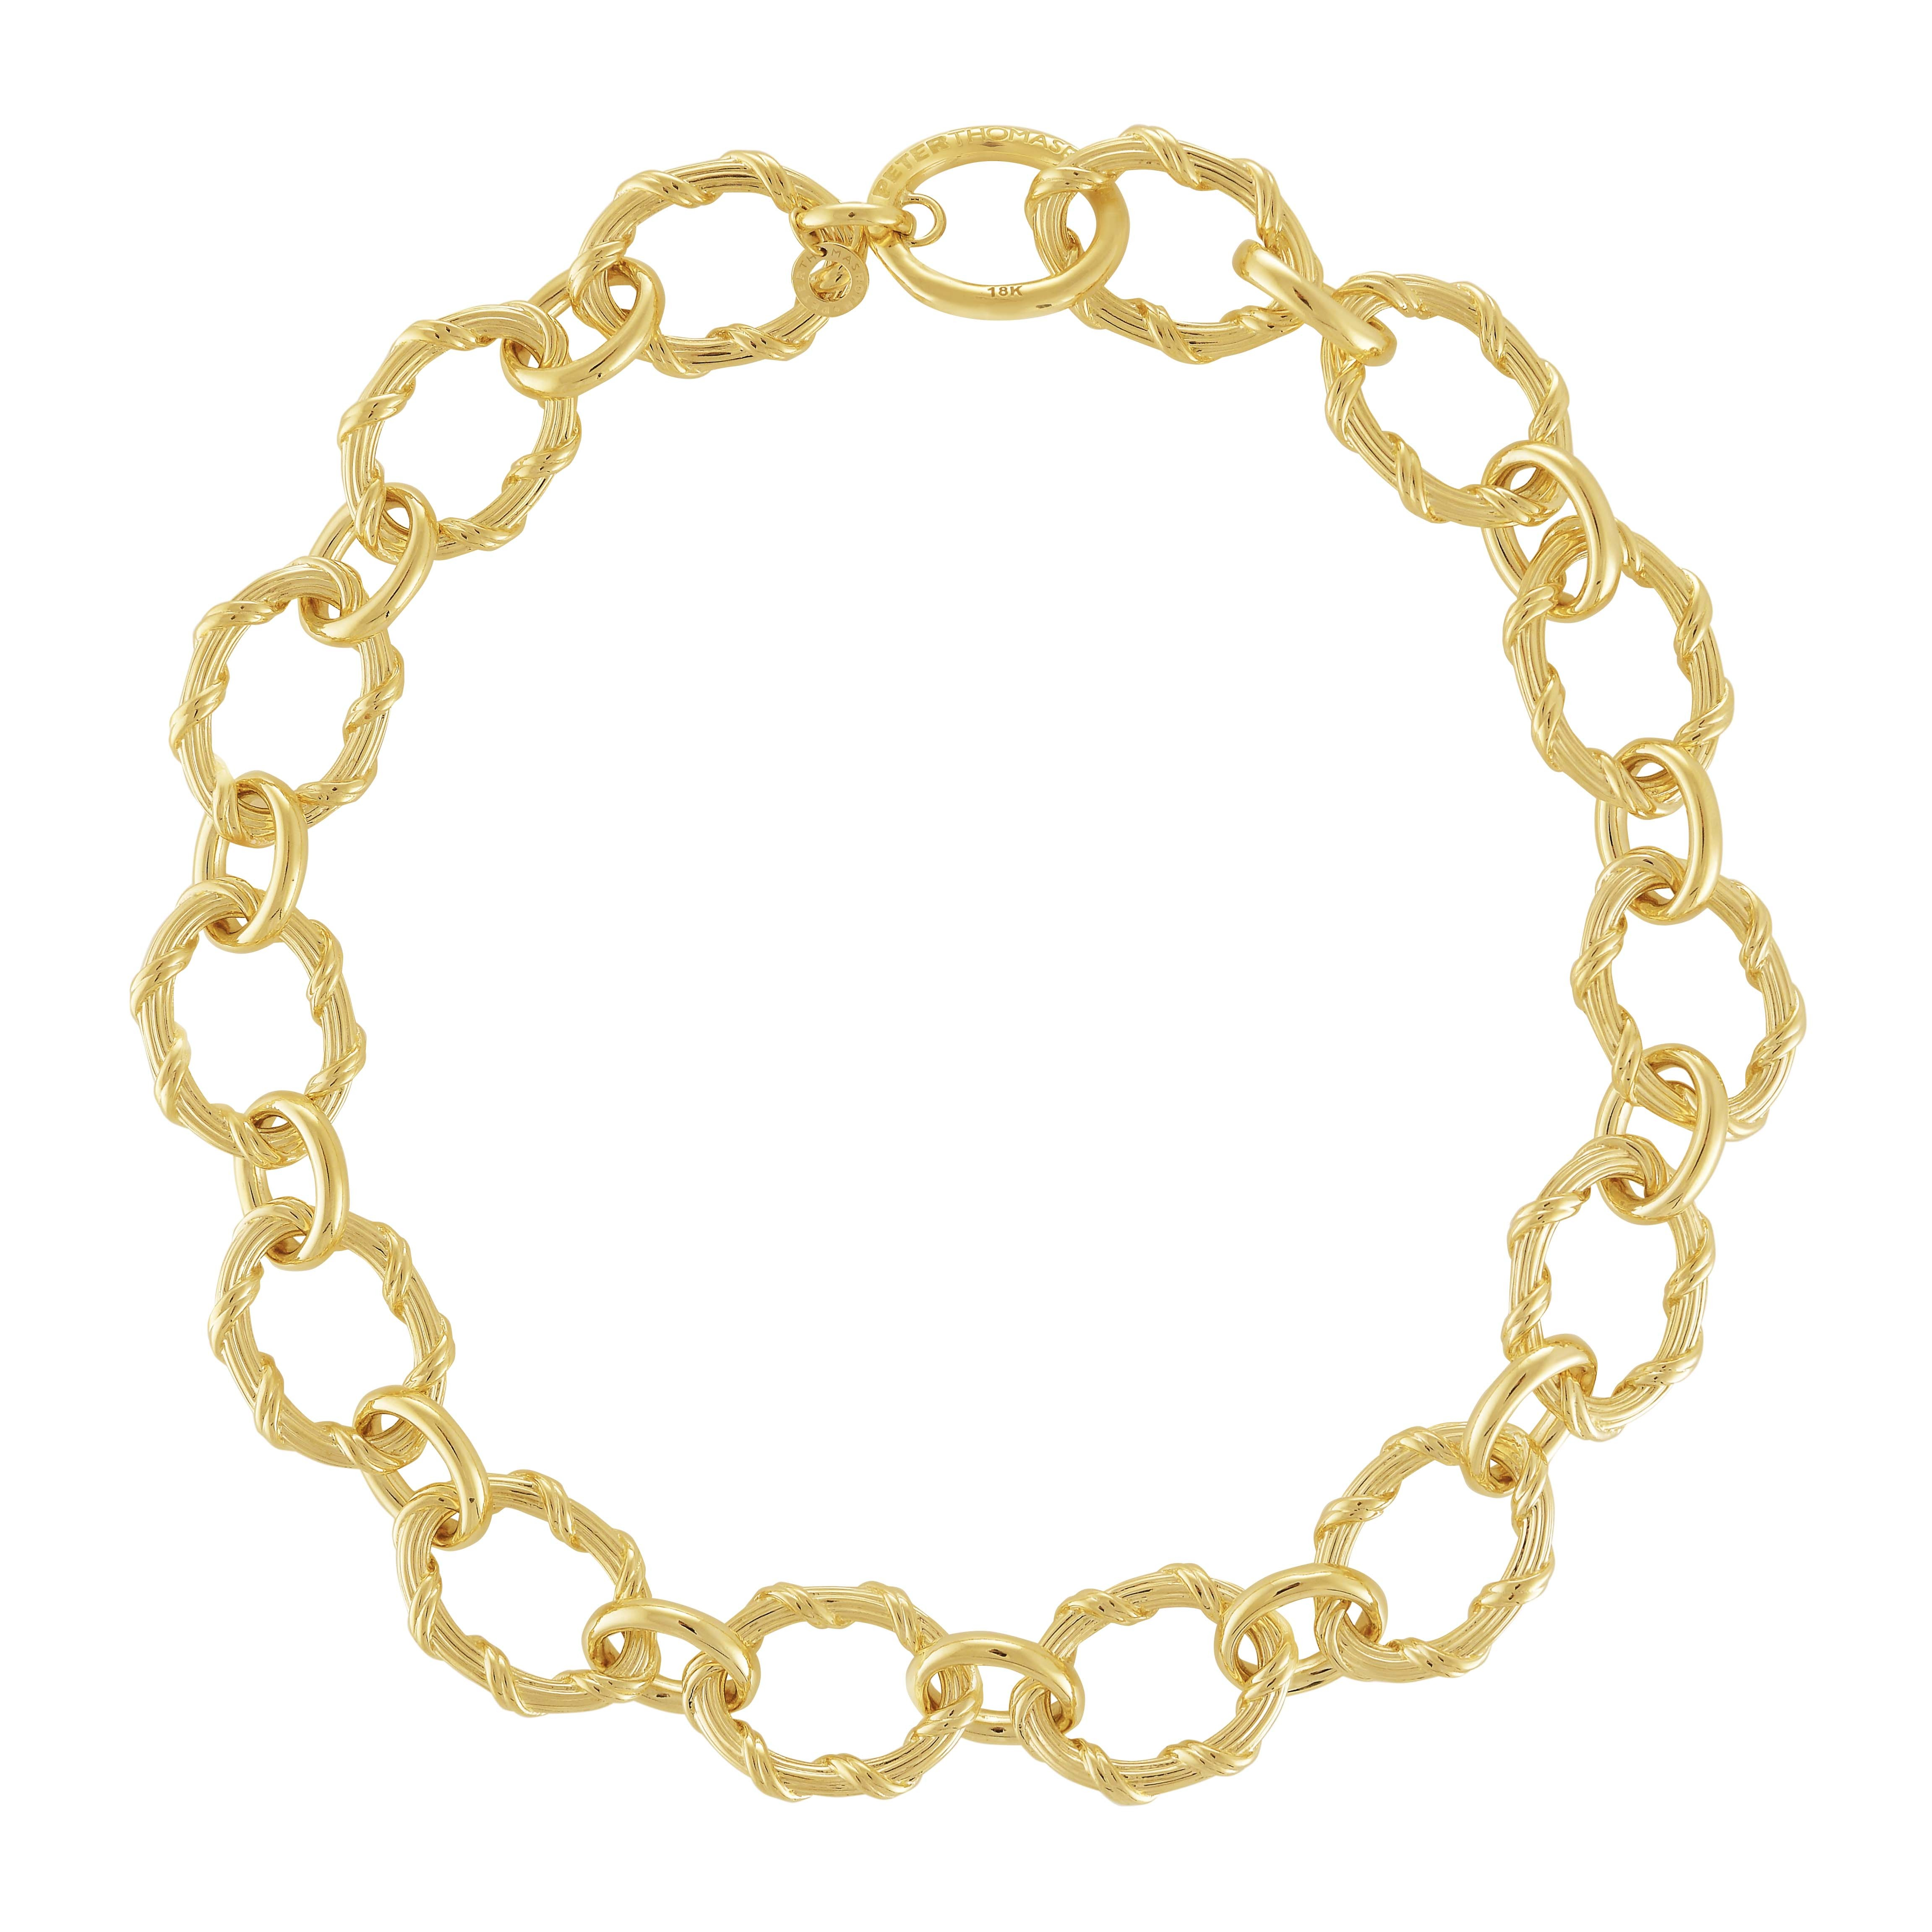 Heritage Oval Link Necklace in 18K yellow gold